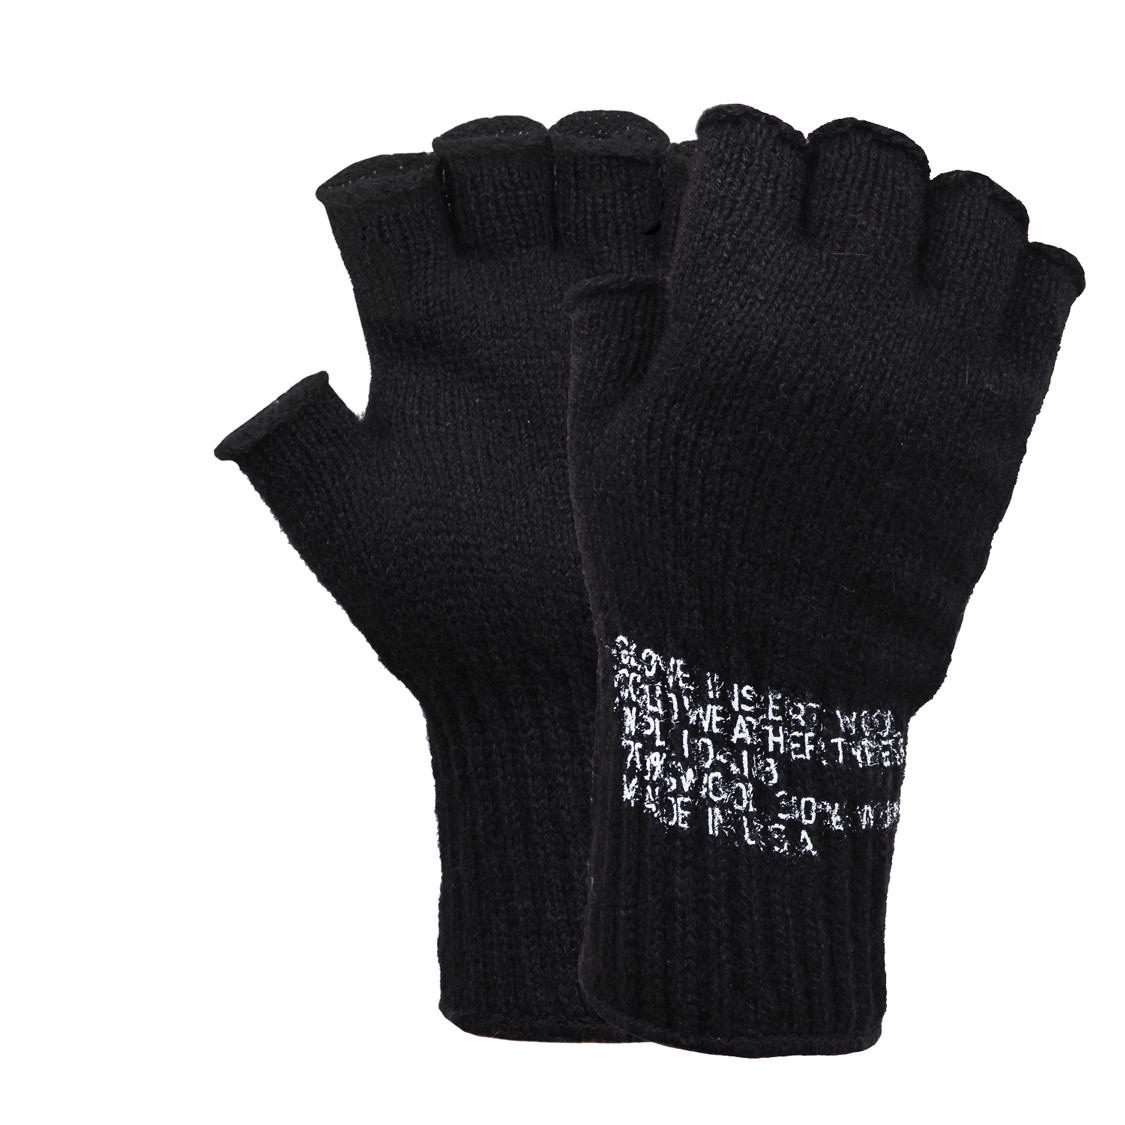 Shop USA Made Fingerless Wool Military Gloves - Fatigues Army Navy Gear e731f553f25